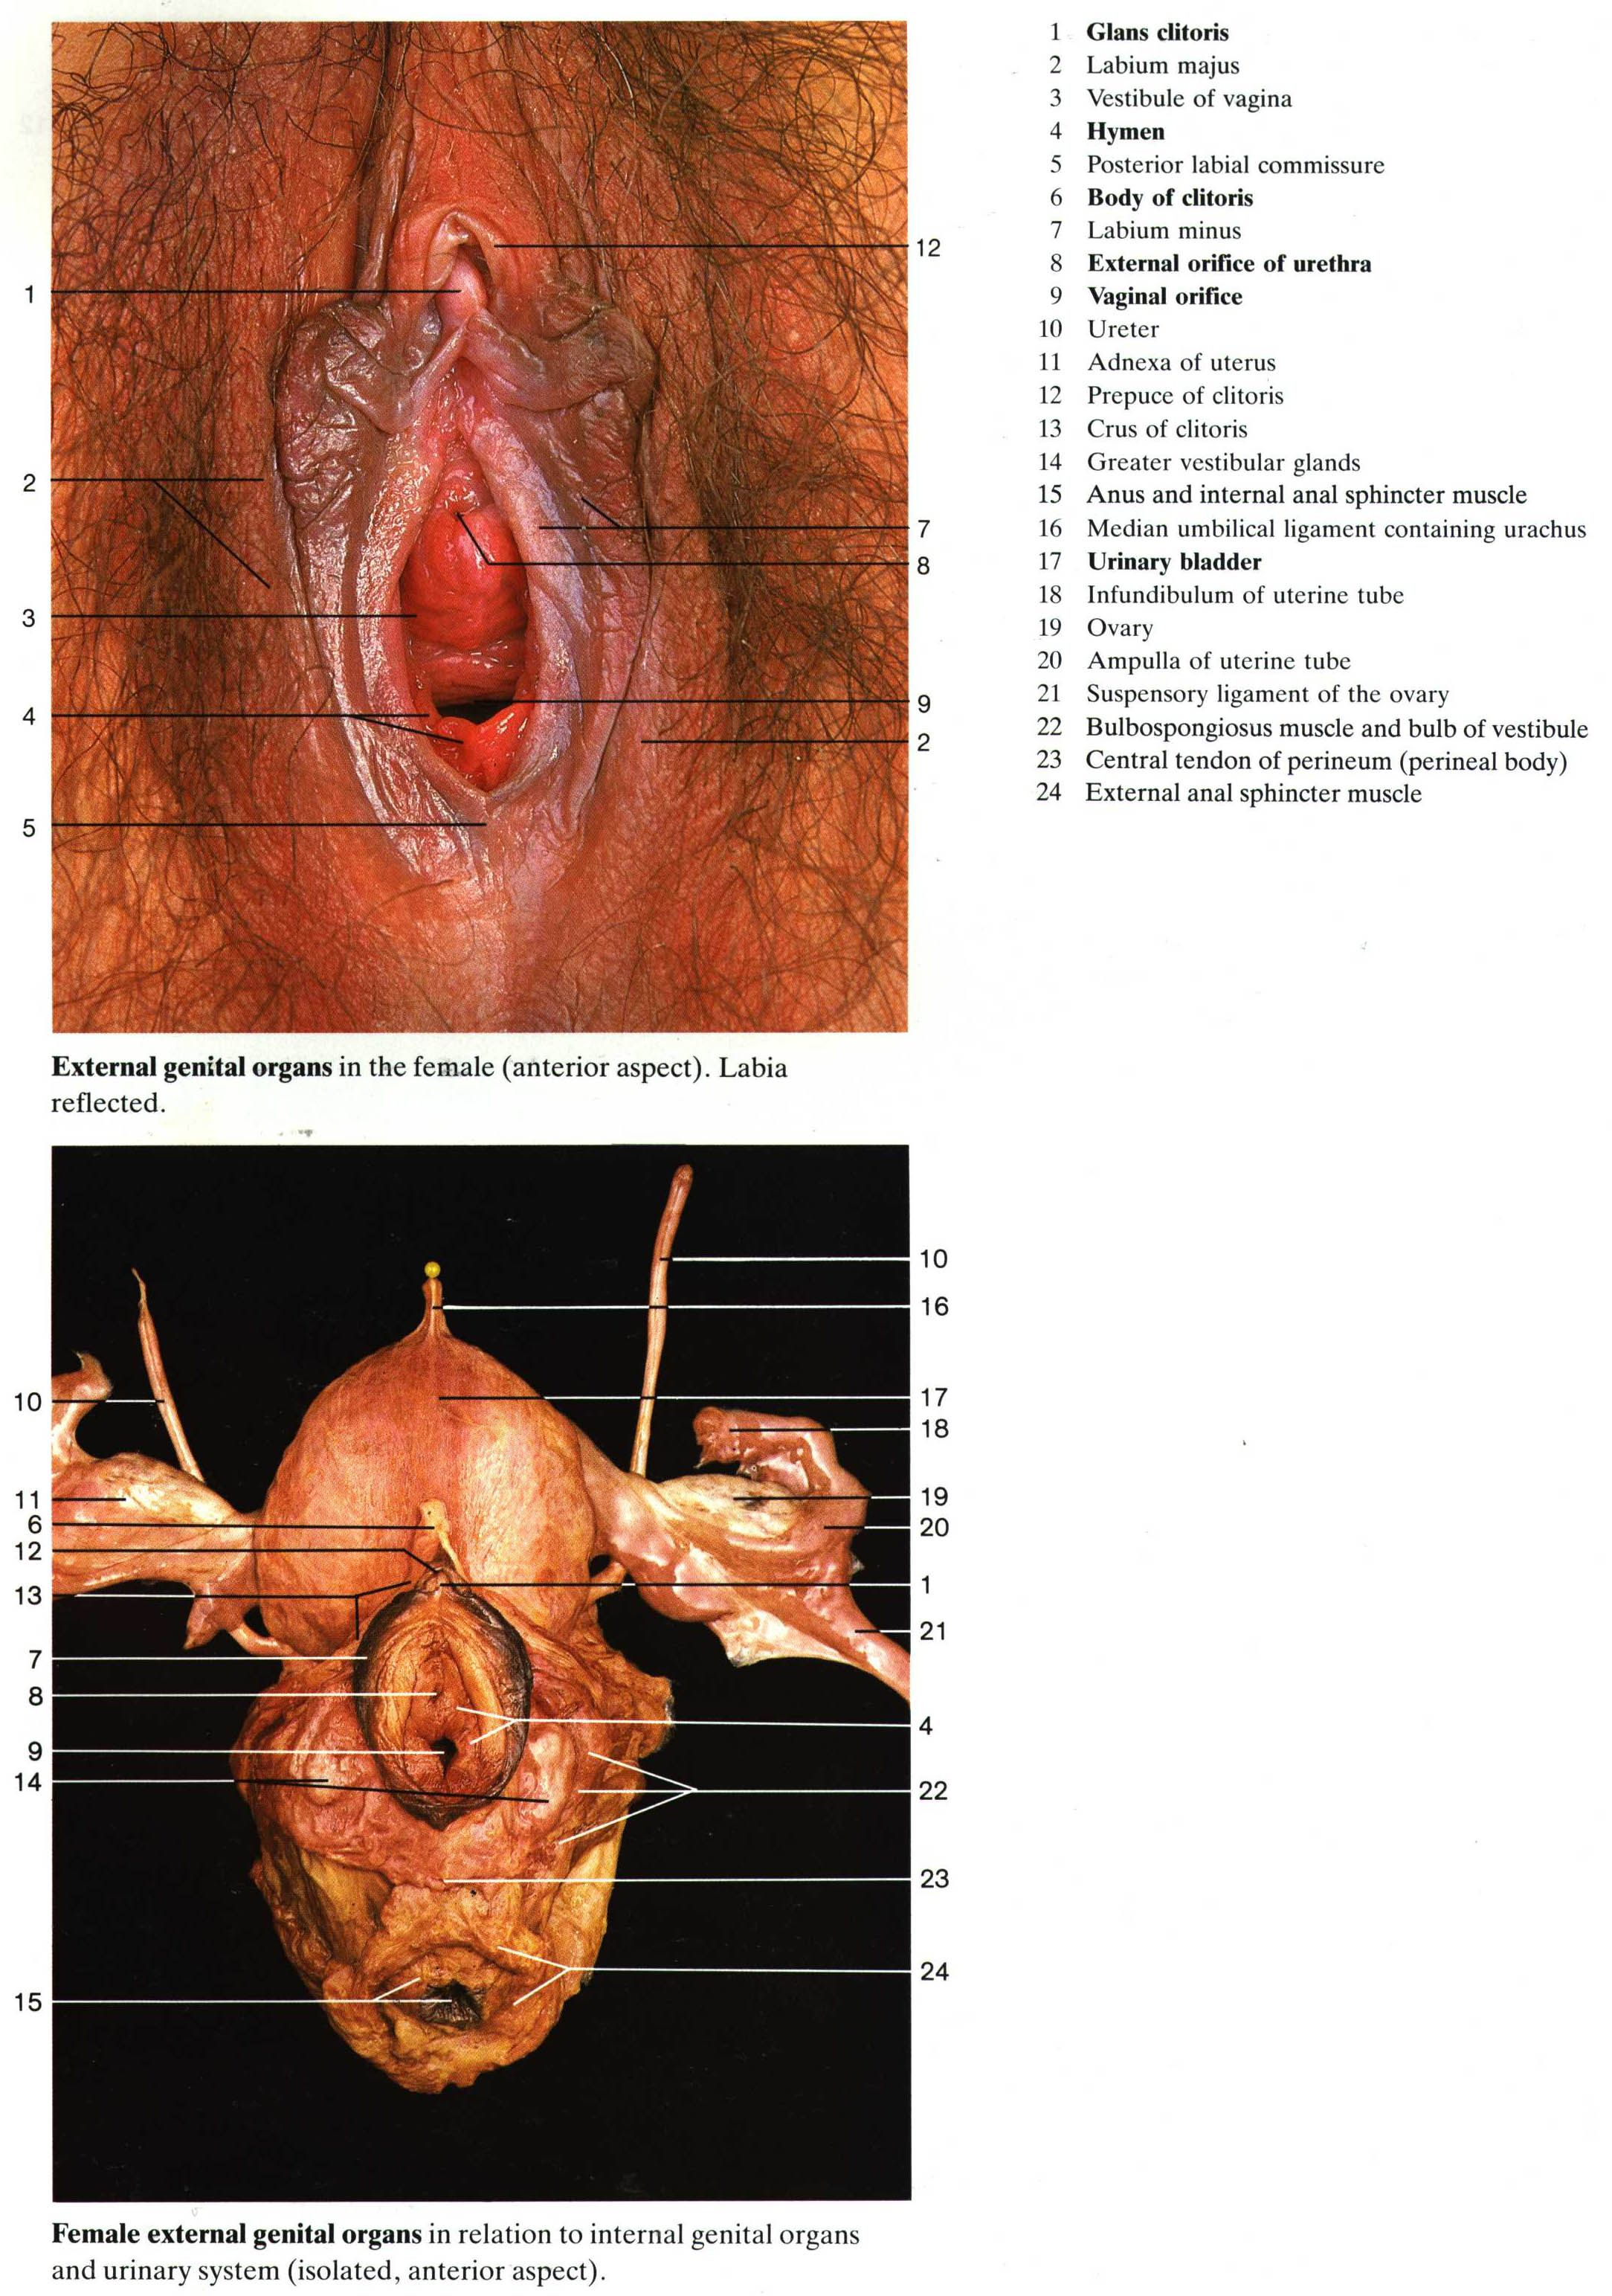 Real Female Anatomy Pictures Human Anatomy Drawing Pinterest